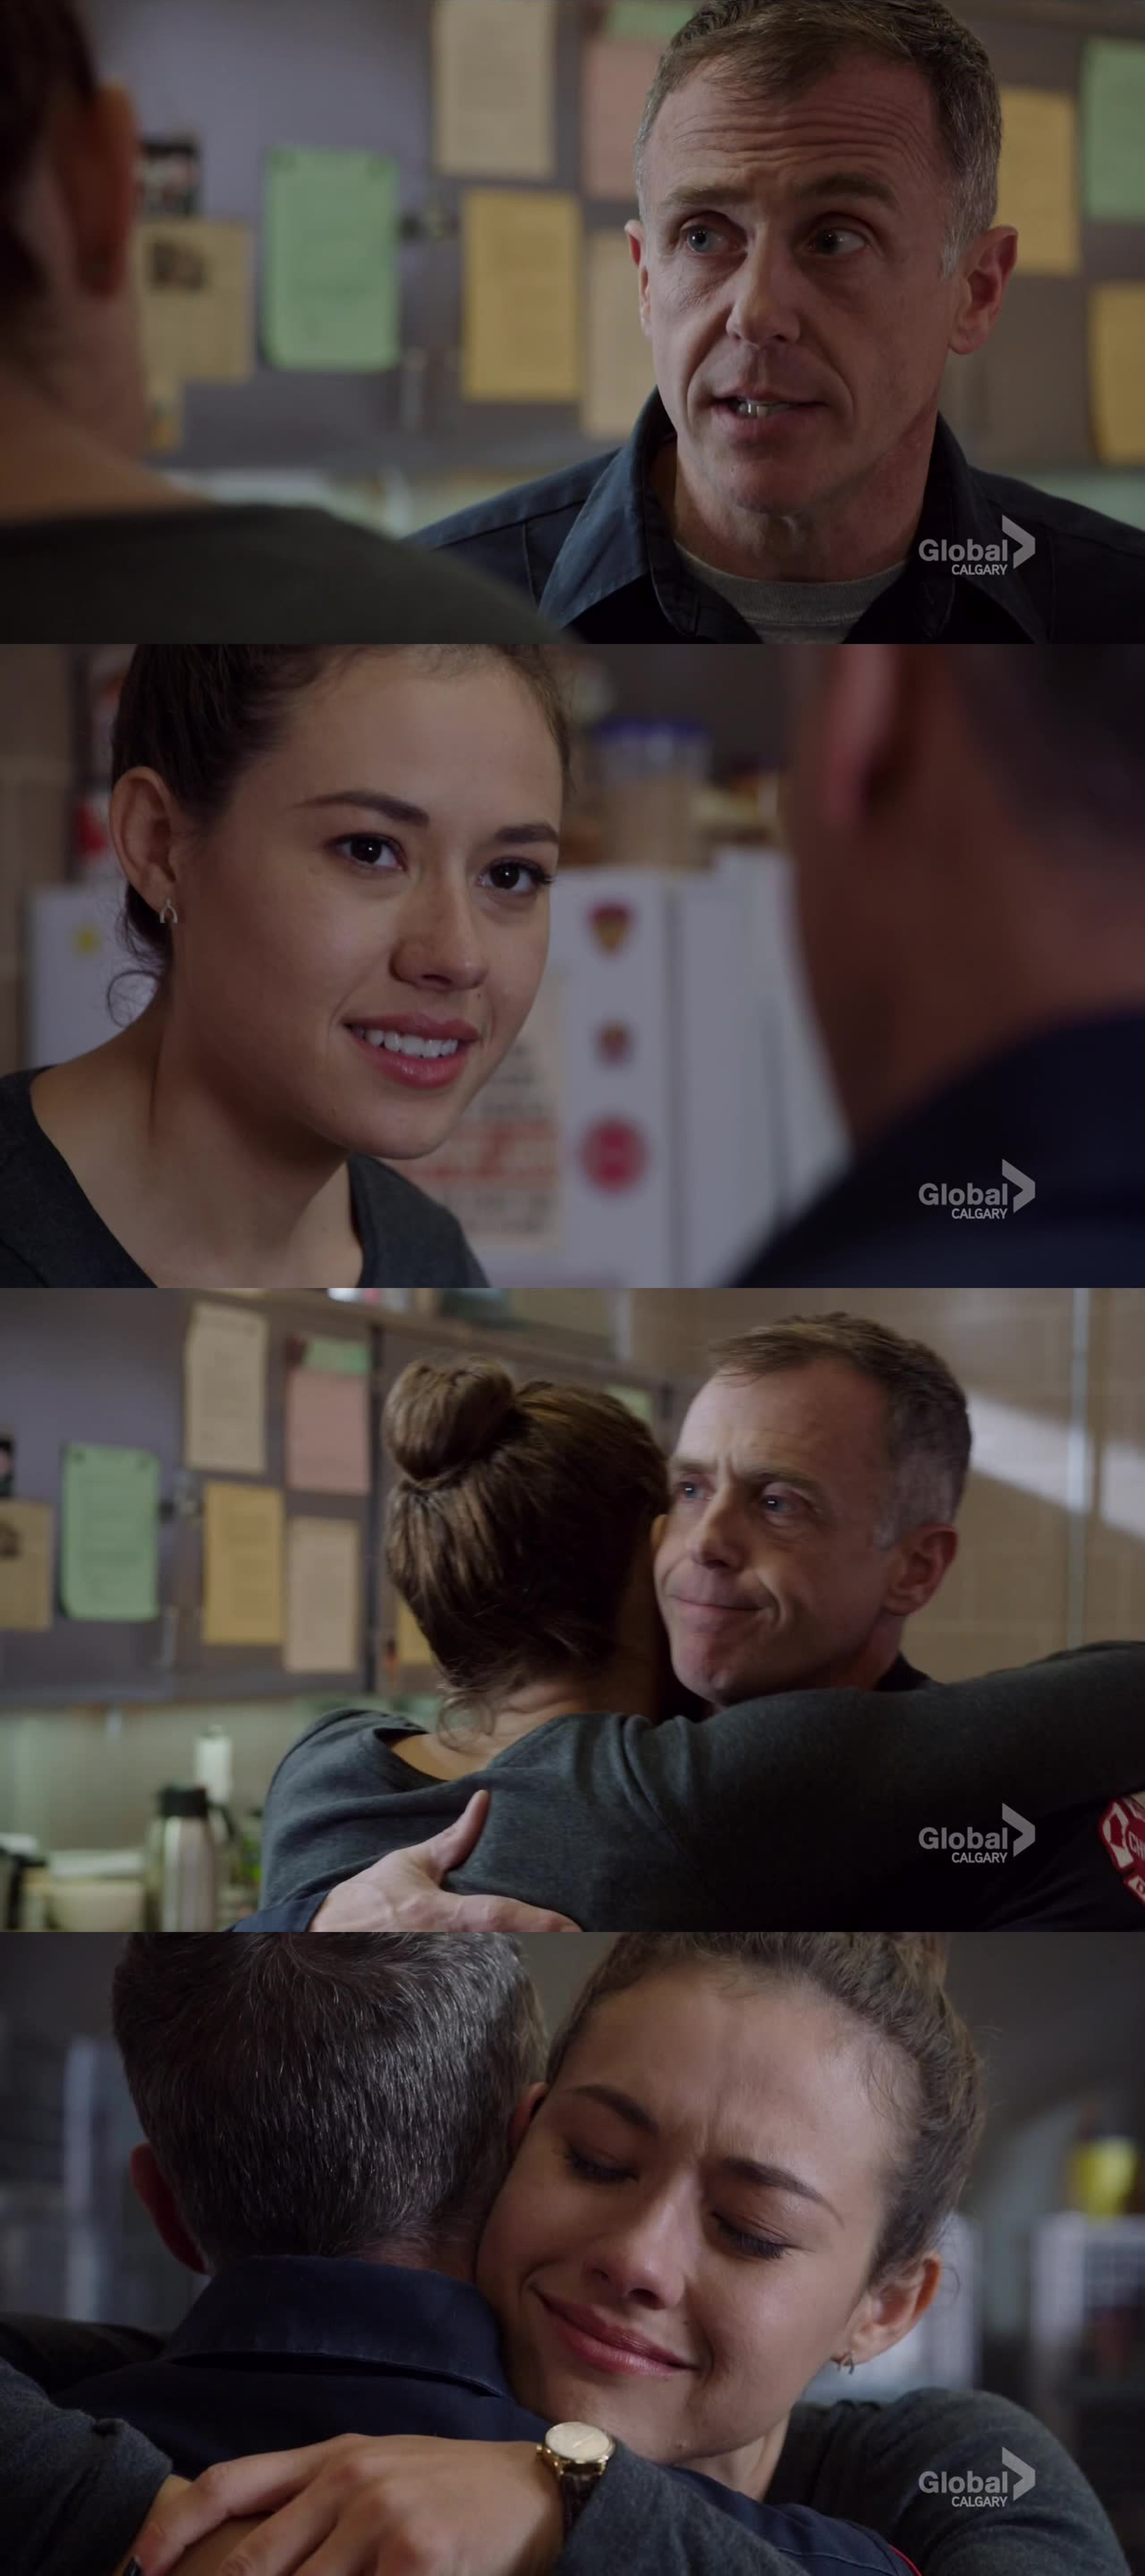 I would love to see a father/daughter relationship growing up between the two of them!